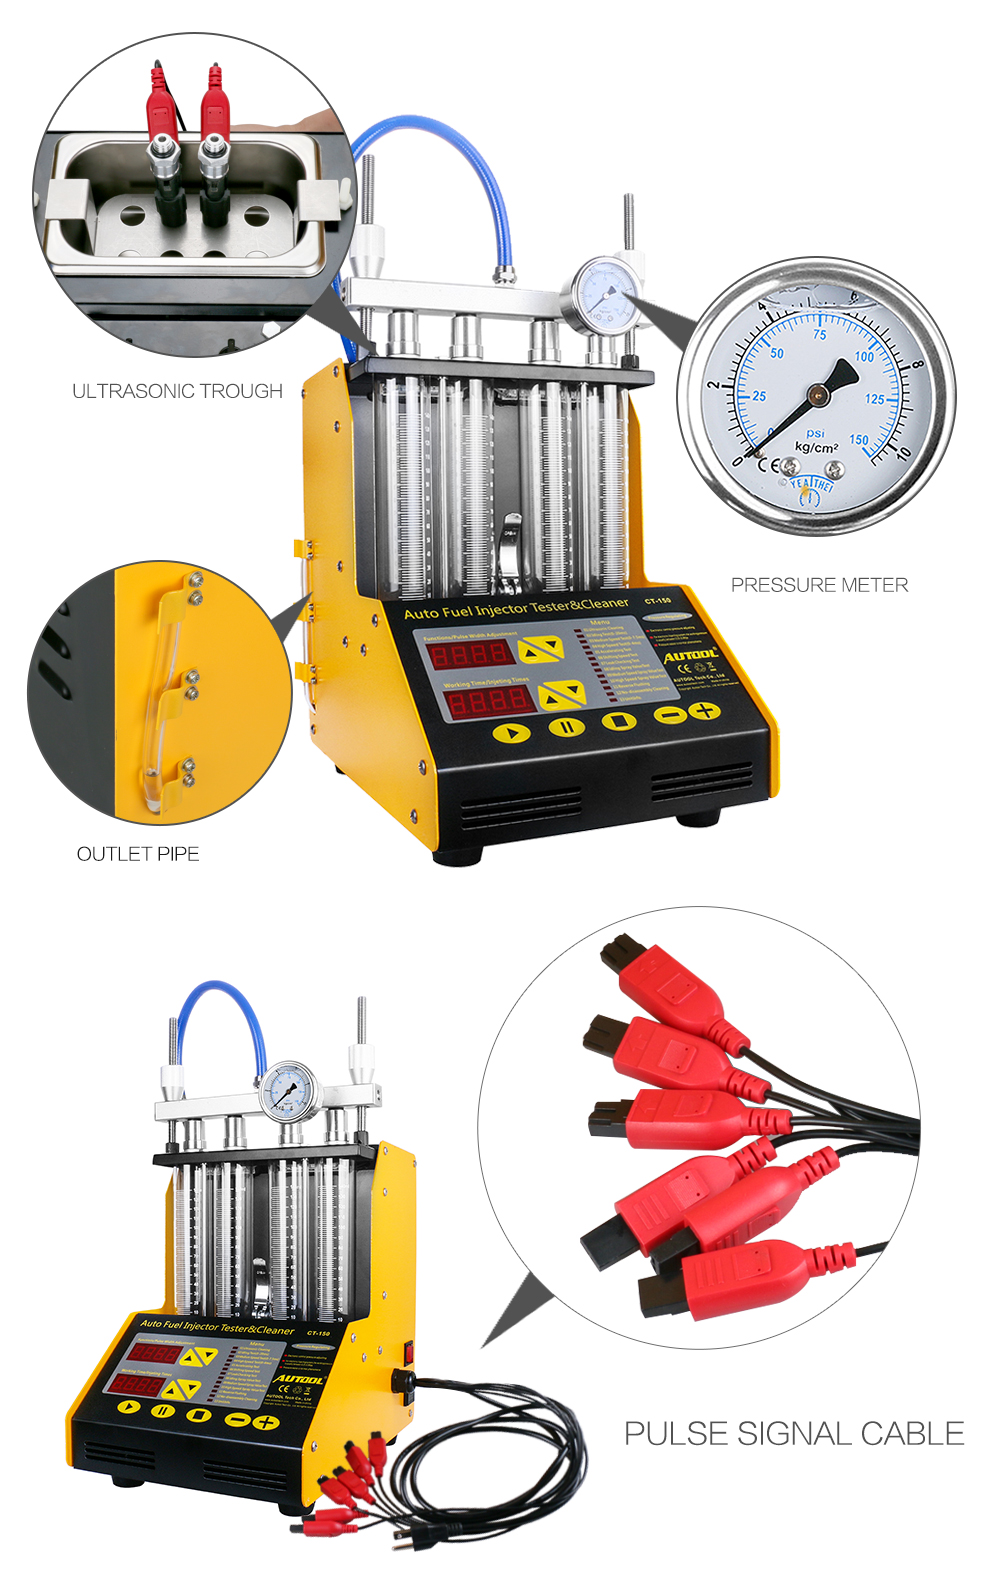 Details about AUTOOL CT150 Ultrasonic Fuel Injector Cleaner & Tester + Free  Autool X60 HUD